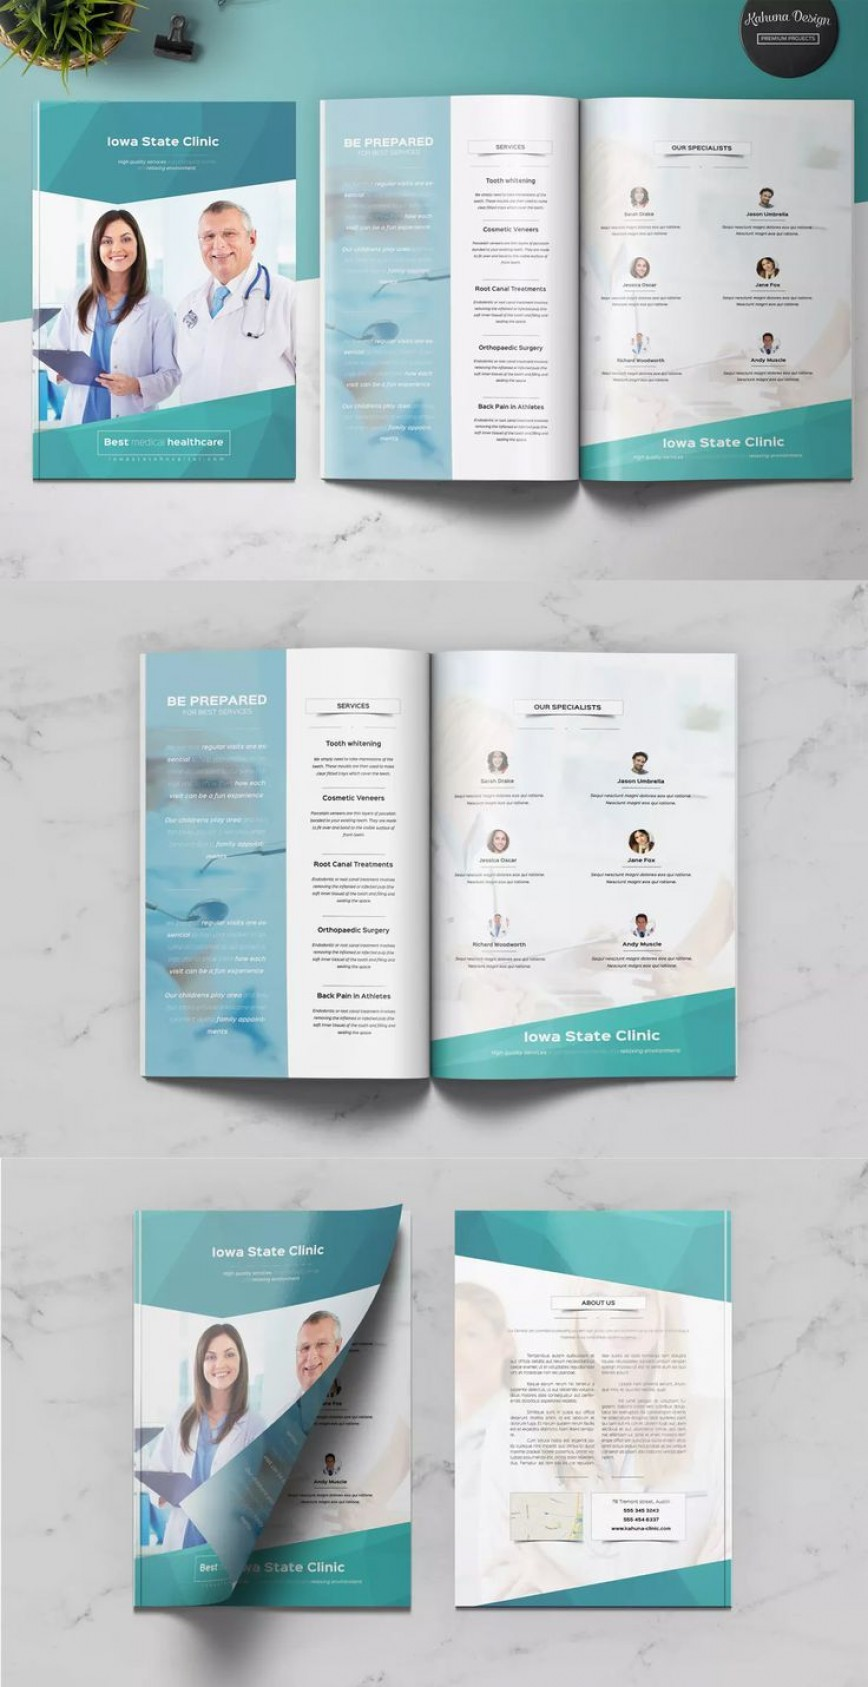 002 Unforgettable Free Brochure Template For Word Picture  Blank Tri Fold Microsoft 2010 Medical Wordpad